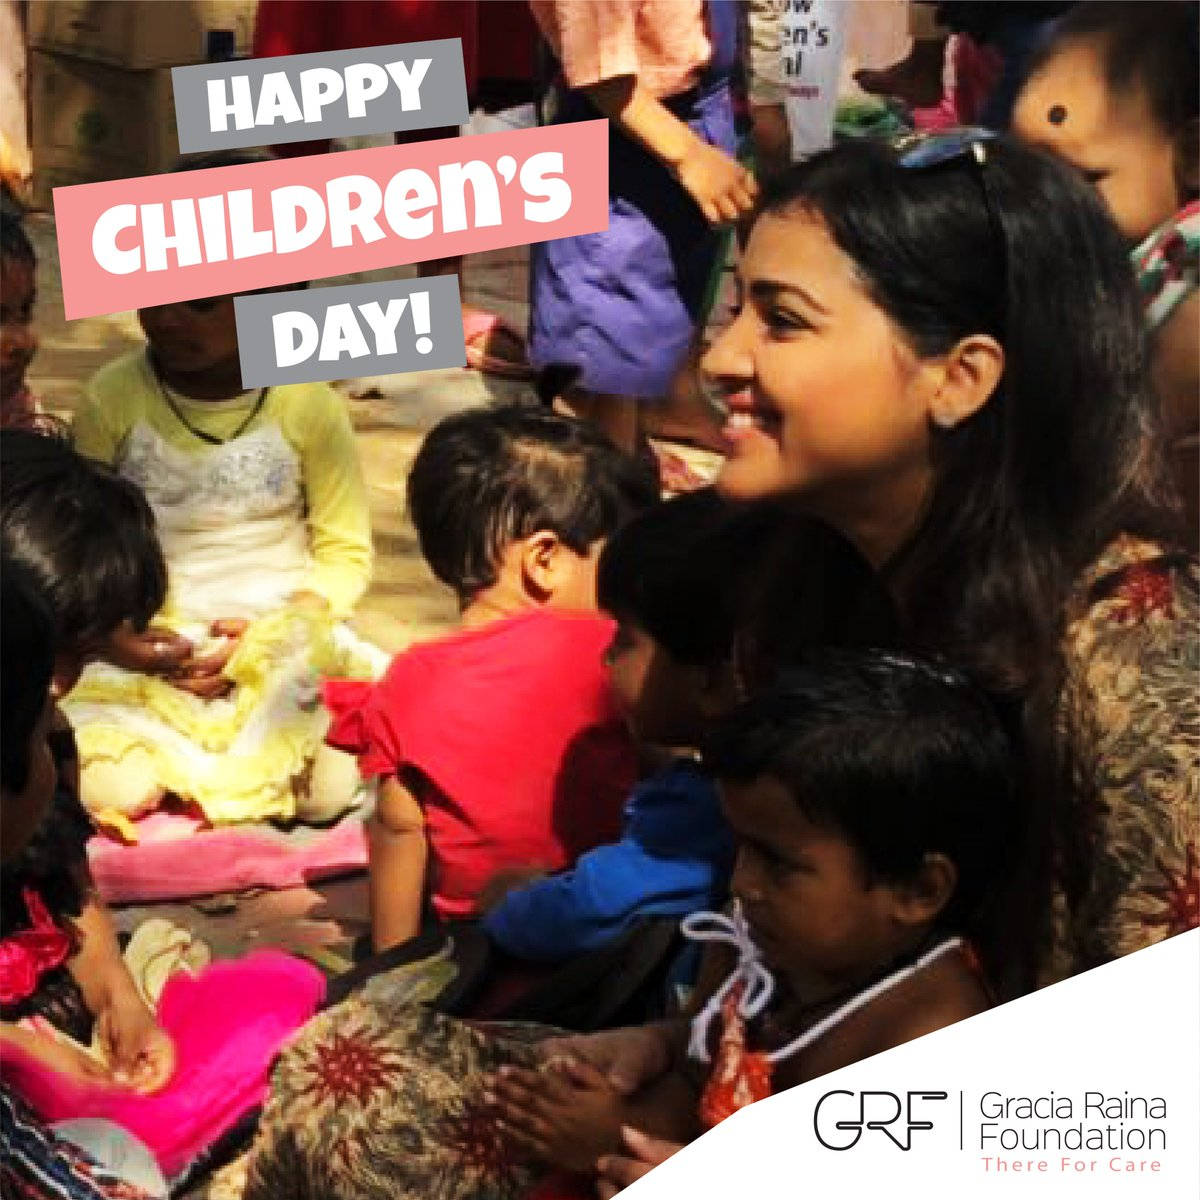 Lets celebrate the innocence, the laughter, the unconditional love, the child in all of us. Happy Childrens Day. #ChildrensDay #JawaharlalNehru #RememberingNehru